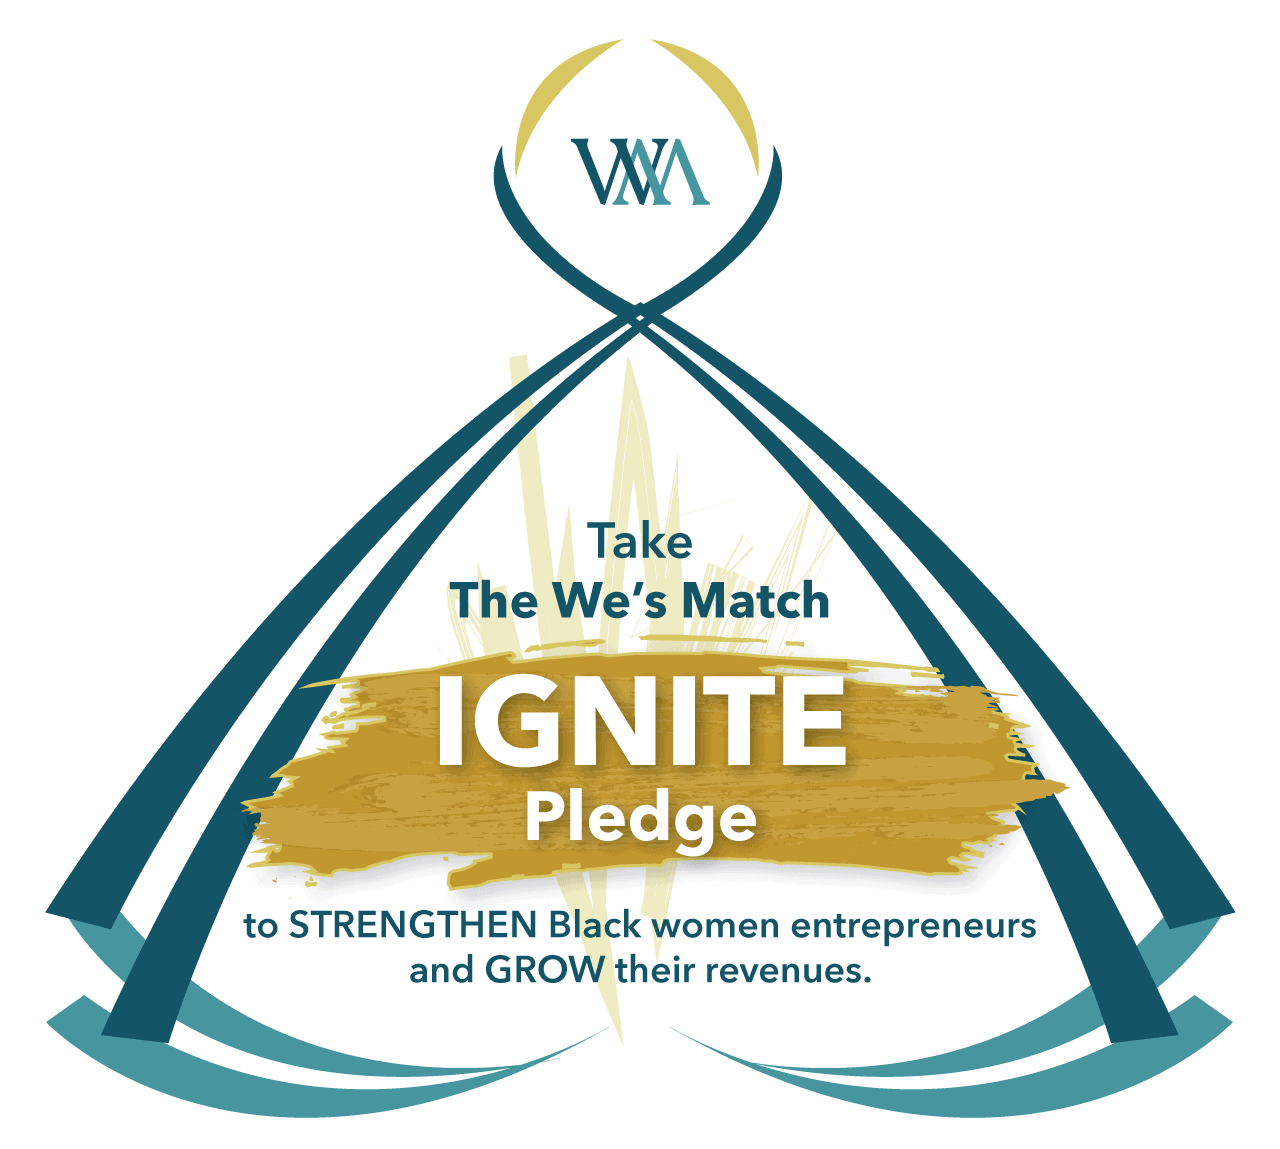 Take The We's Match IGNITE Pledge to STRENGTHEN Black women entrepreneurs and GROW their revenues.